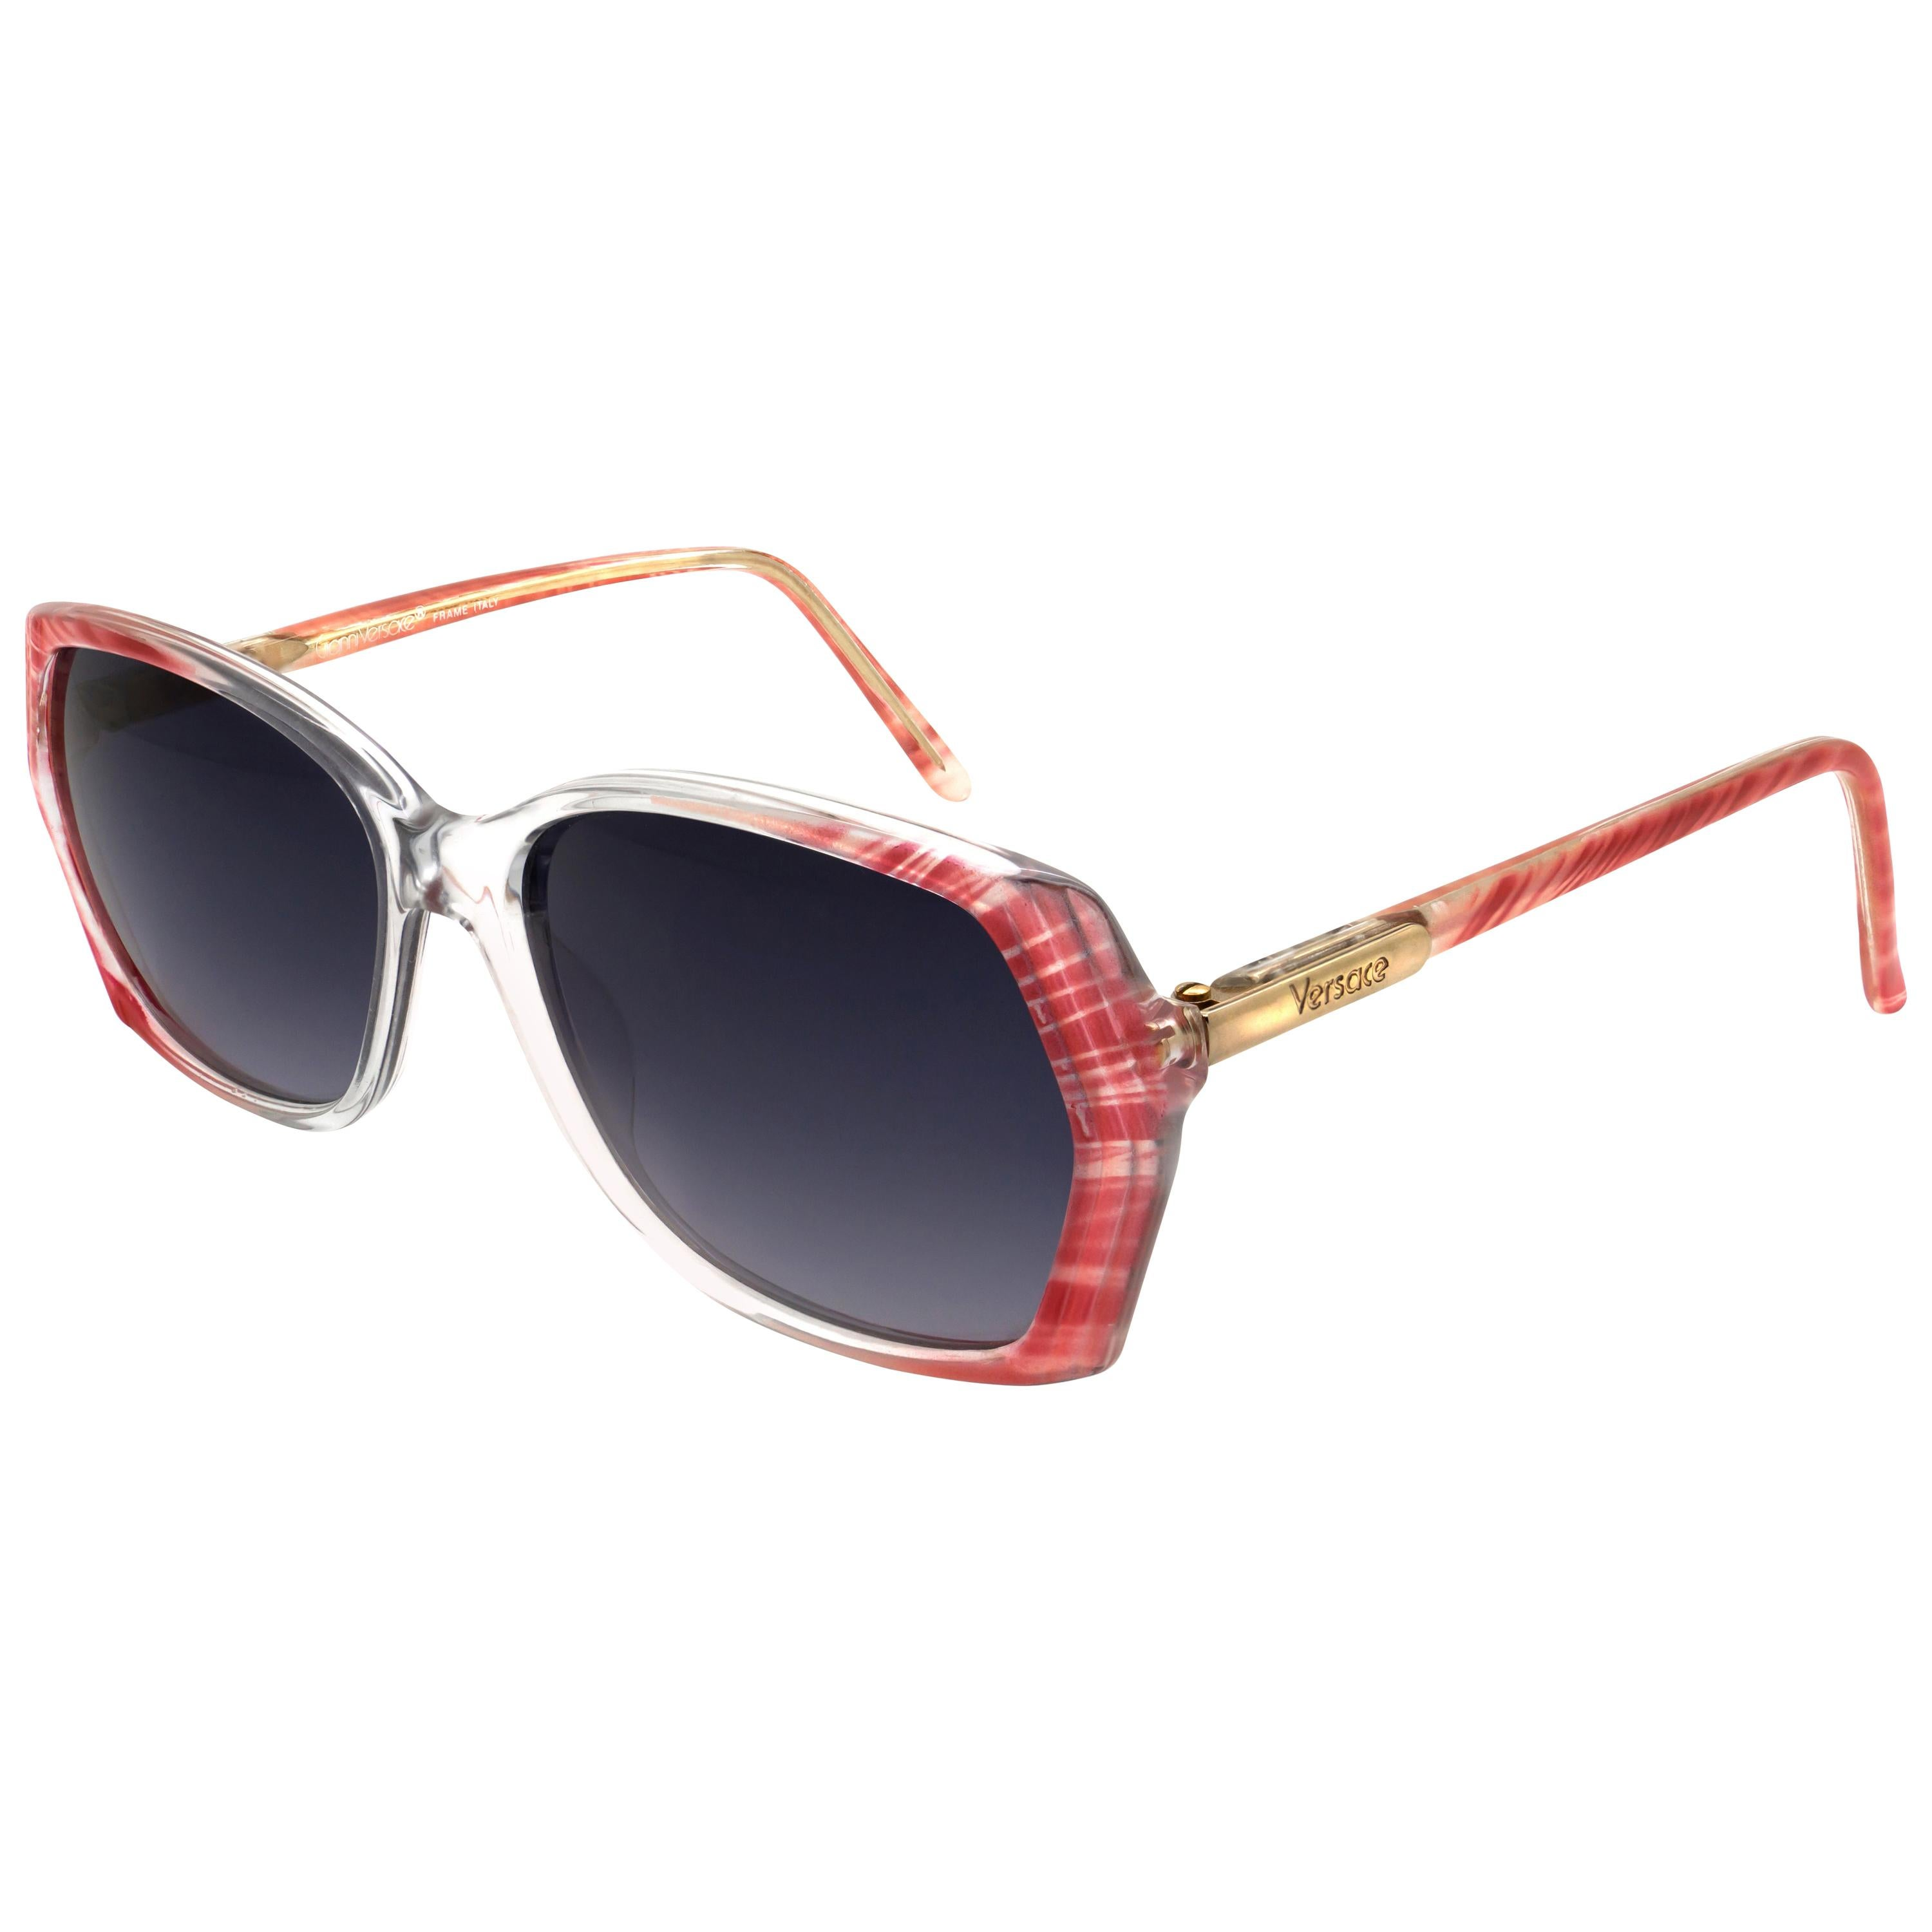 Gianni Versace 80s pink sunglasses for women